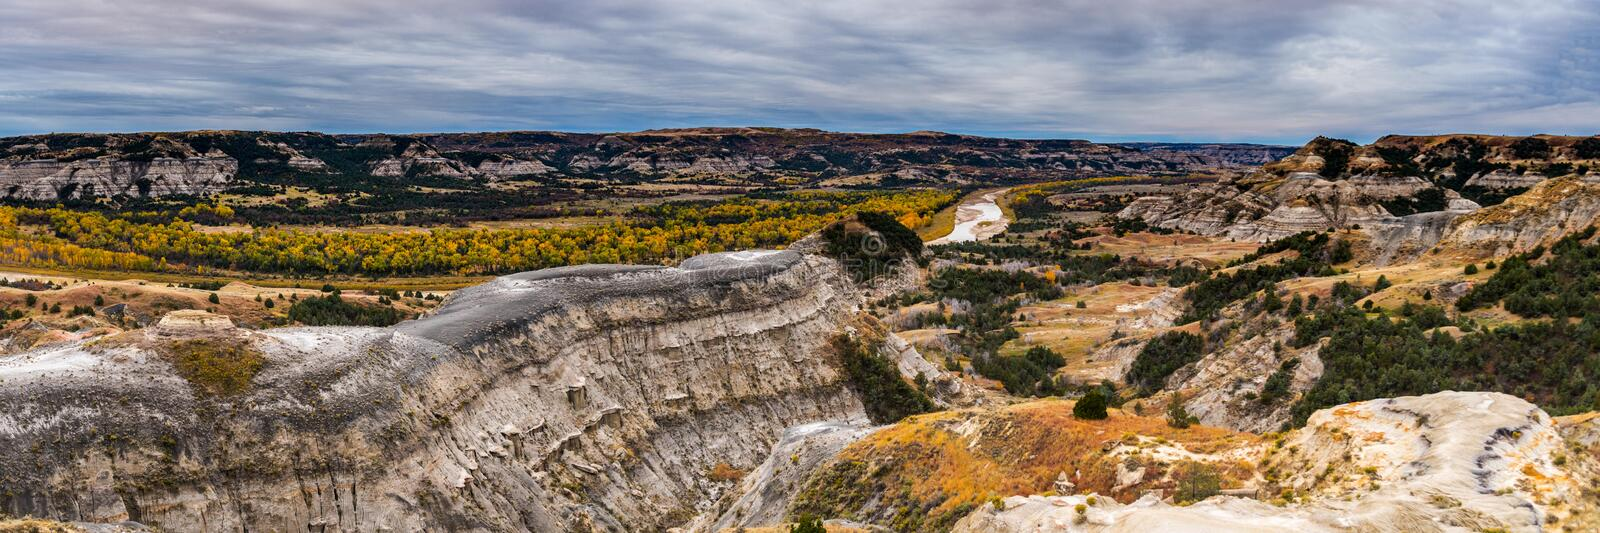 Landscape Views of Theodore Roosevelt National Park. Theodore Roosevelt National Park takes on a different look in the autumn as the fall colors come out in an royalty free stock photography